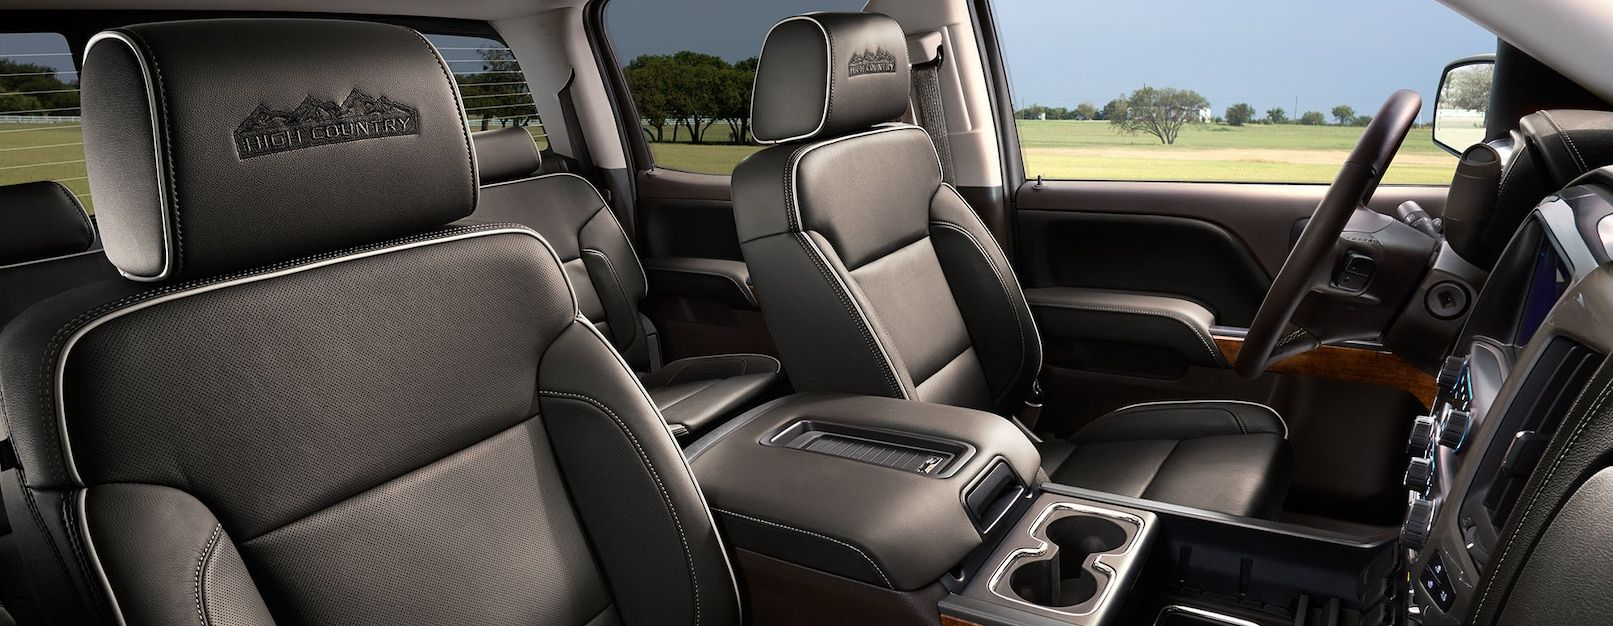 Supple Seating in the Silverado 1500